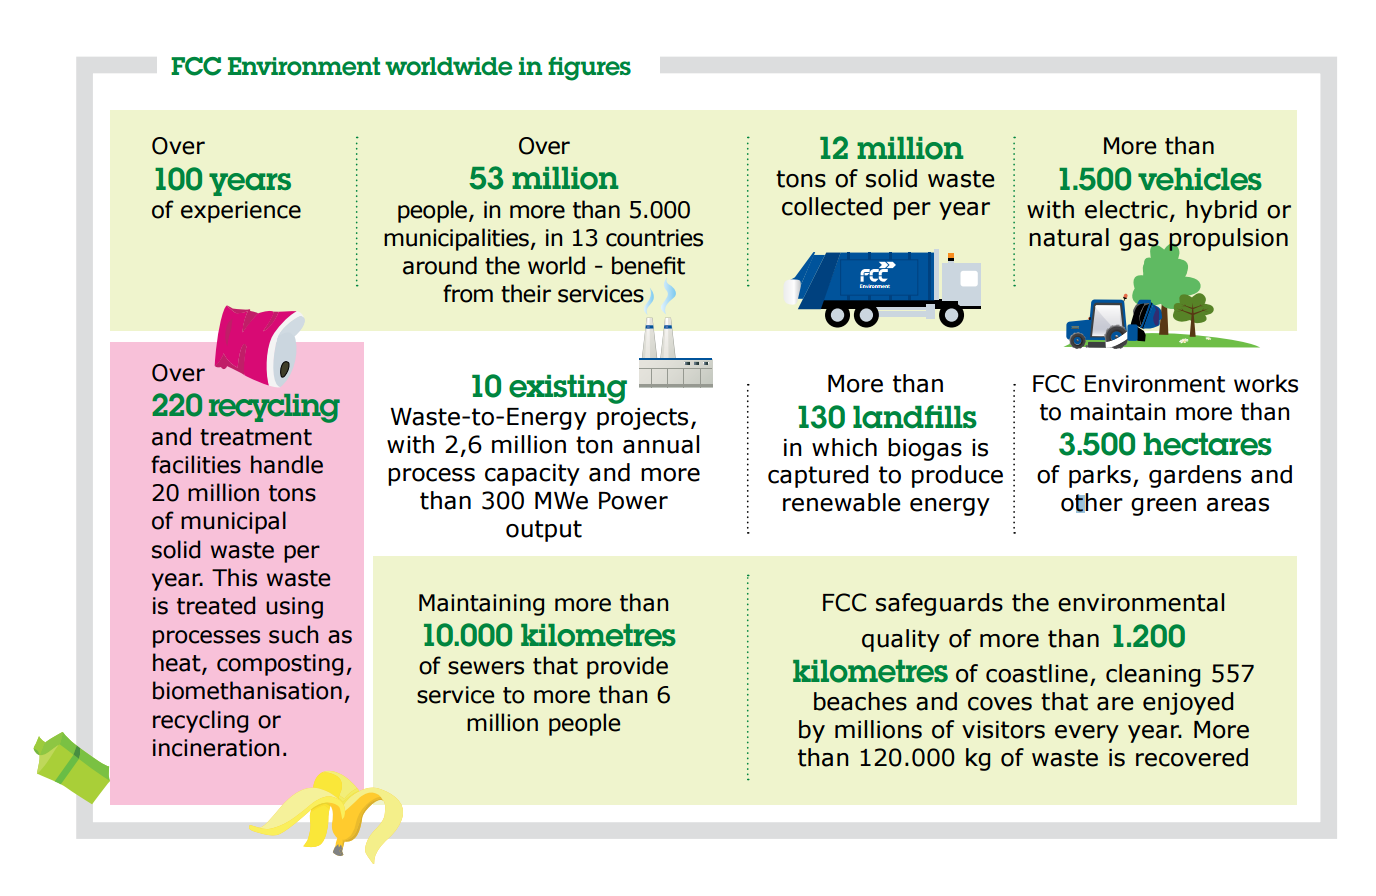 Recycling more than 120 hours per year